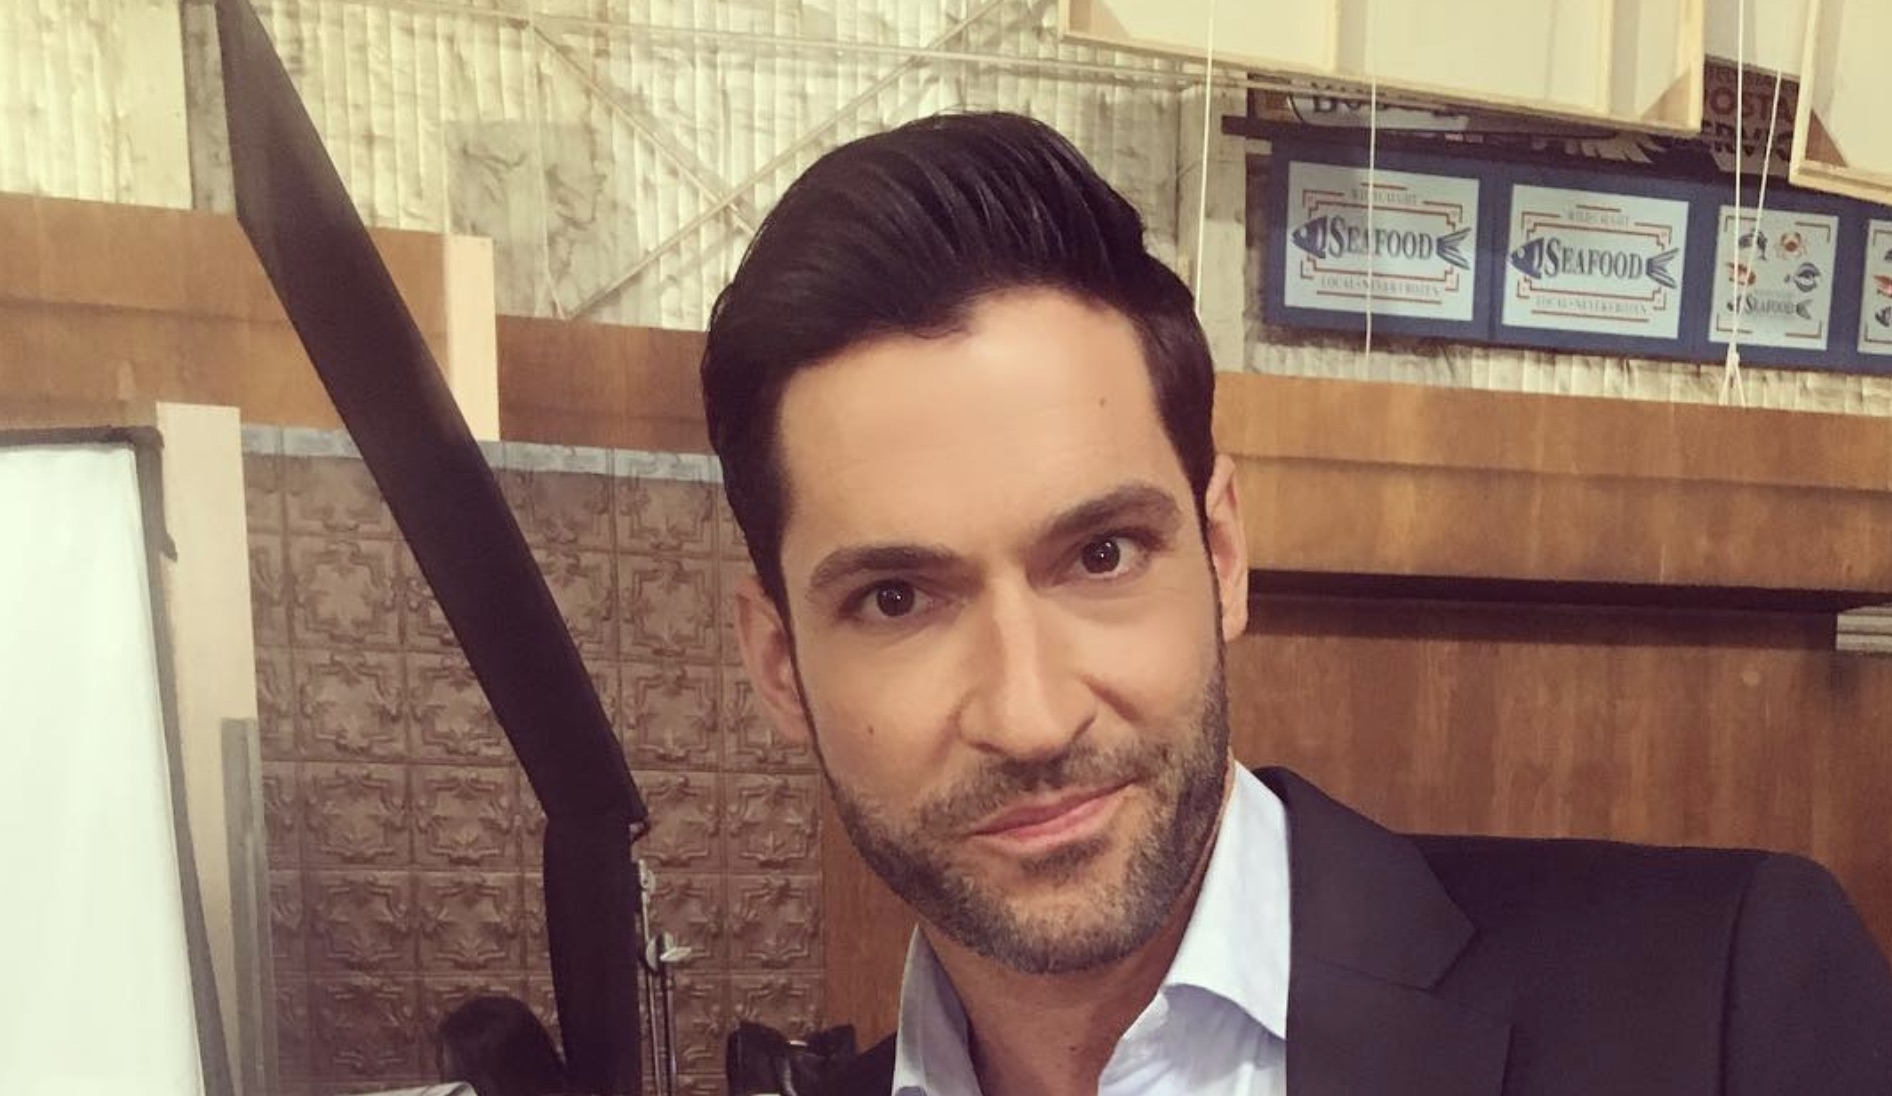 Tom Ellis, Lucifer-https://www.instagram.com/p/Bouf9c4loK4/